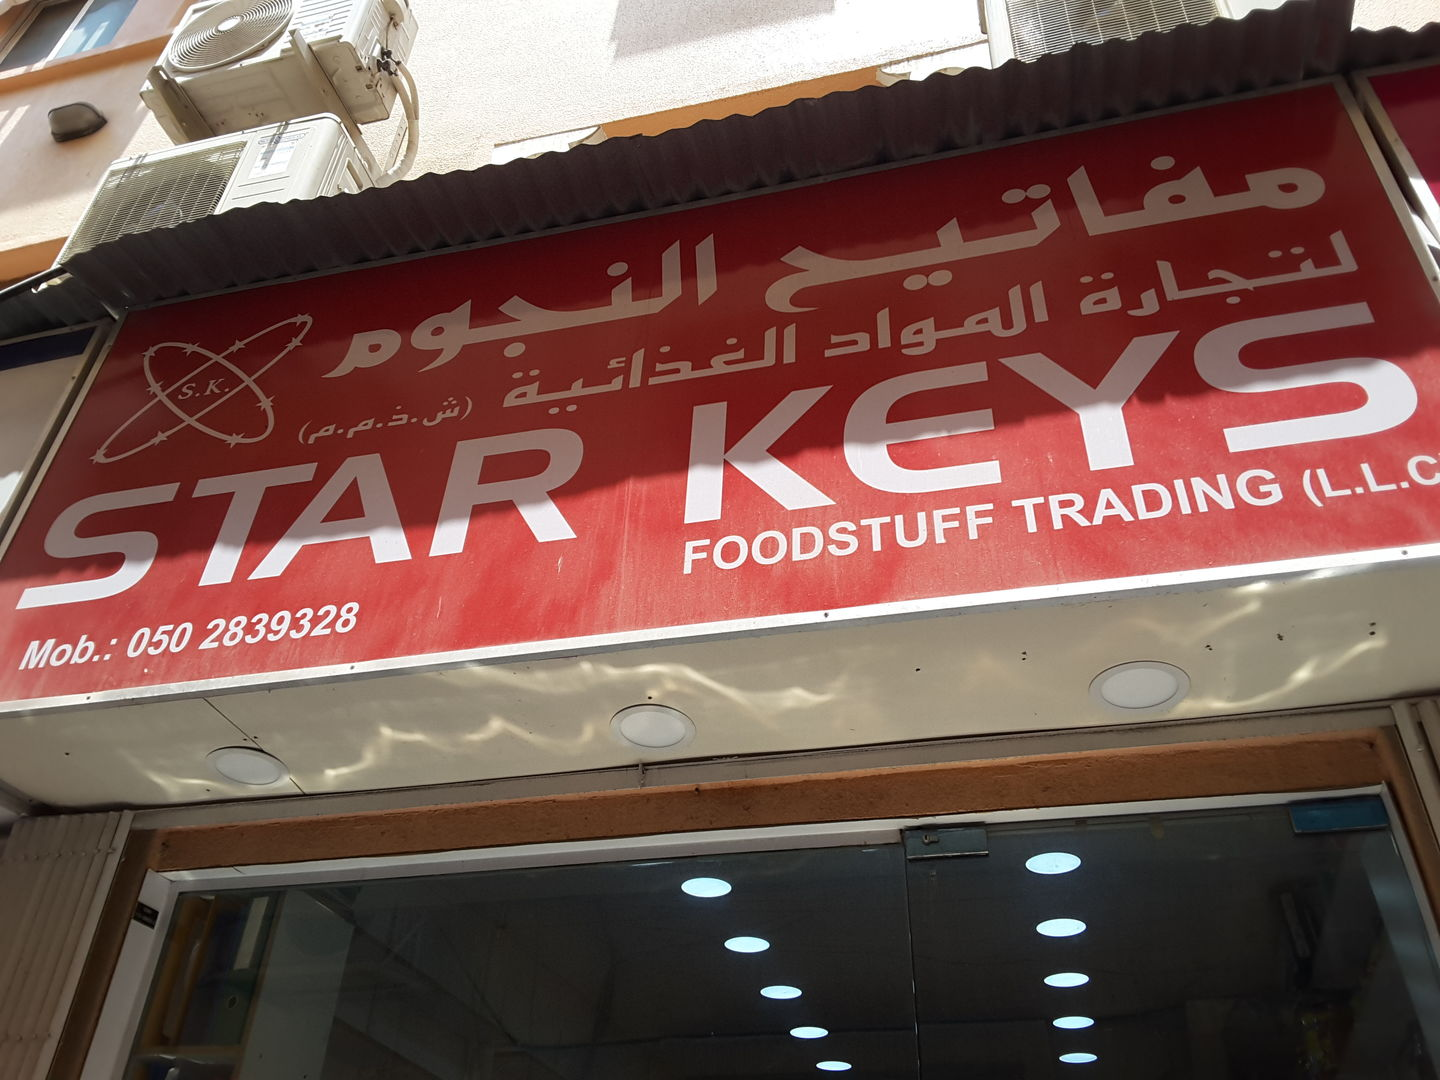 HiDubai-business-star-keys-foodstuff-trading-b2b-services-food-stuff-trading-al-ras-dubai-2